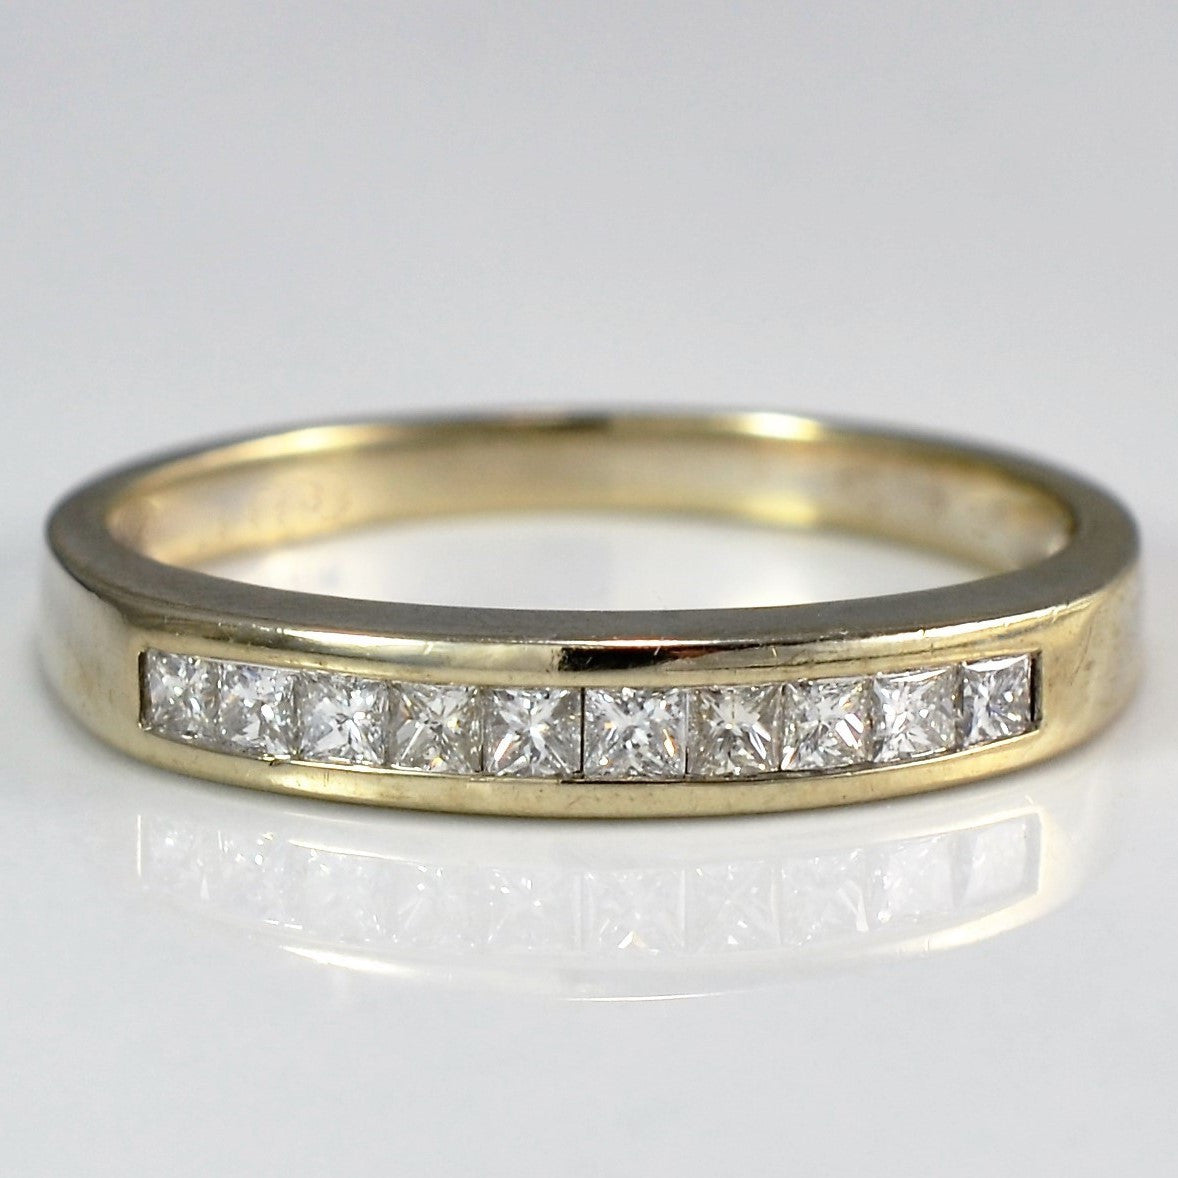 set wedding in white once a band round diamond upon wide gold channel products